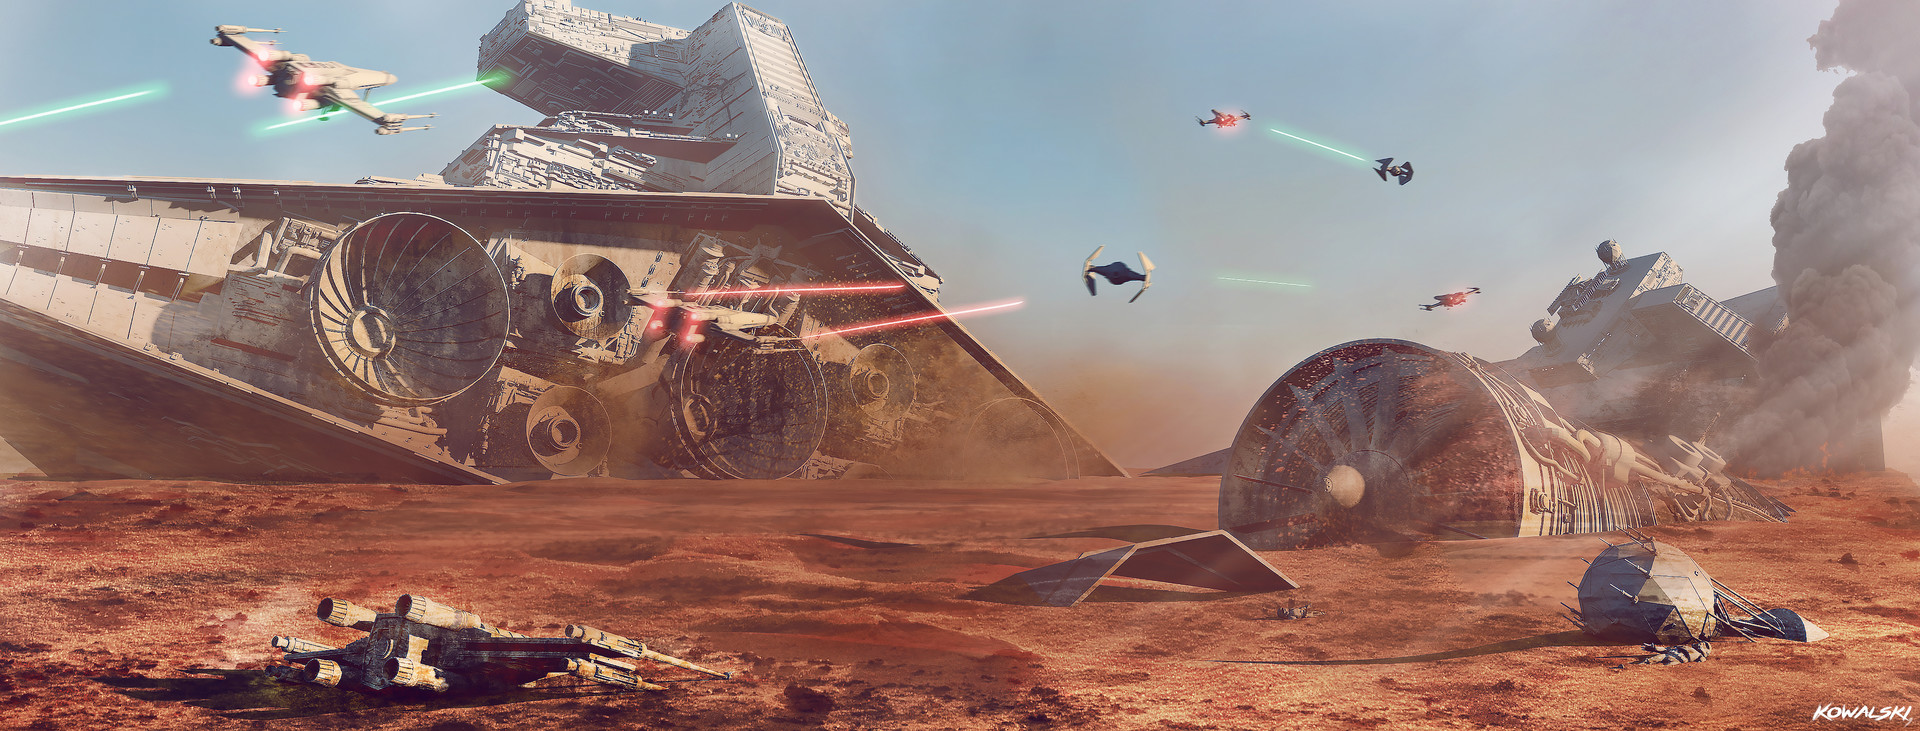 artstation - battle of jakku - star wars battlefront, dylan kowalski